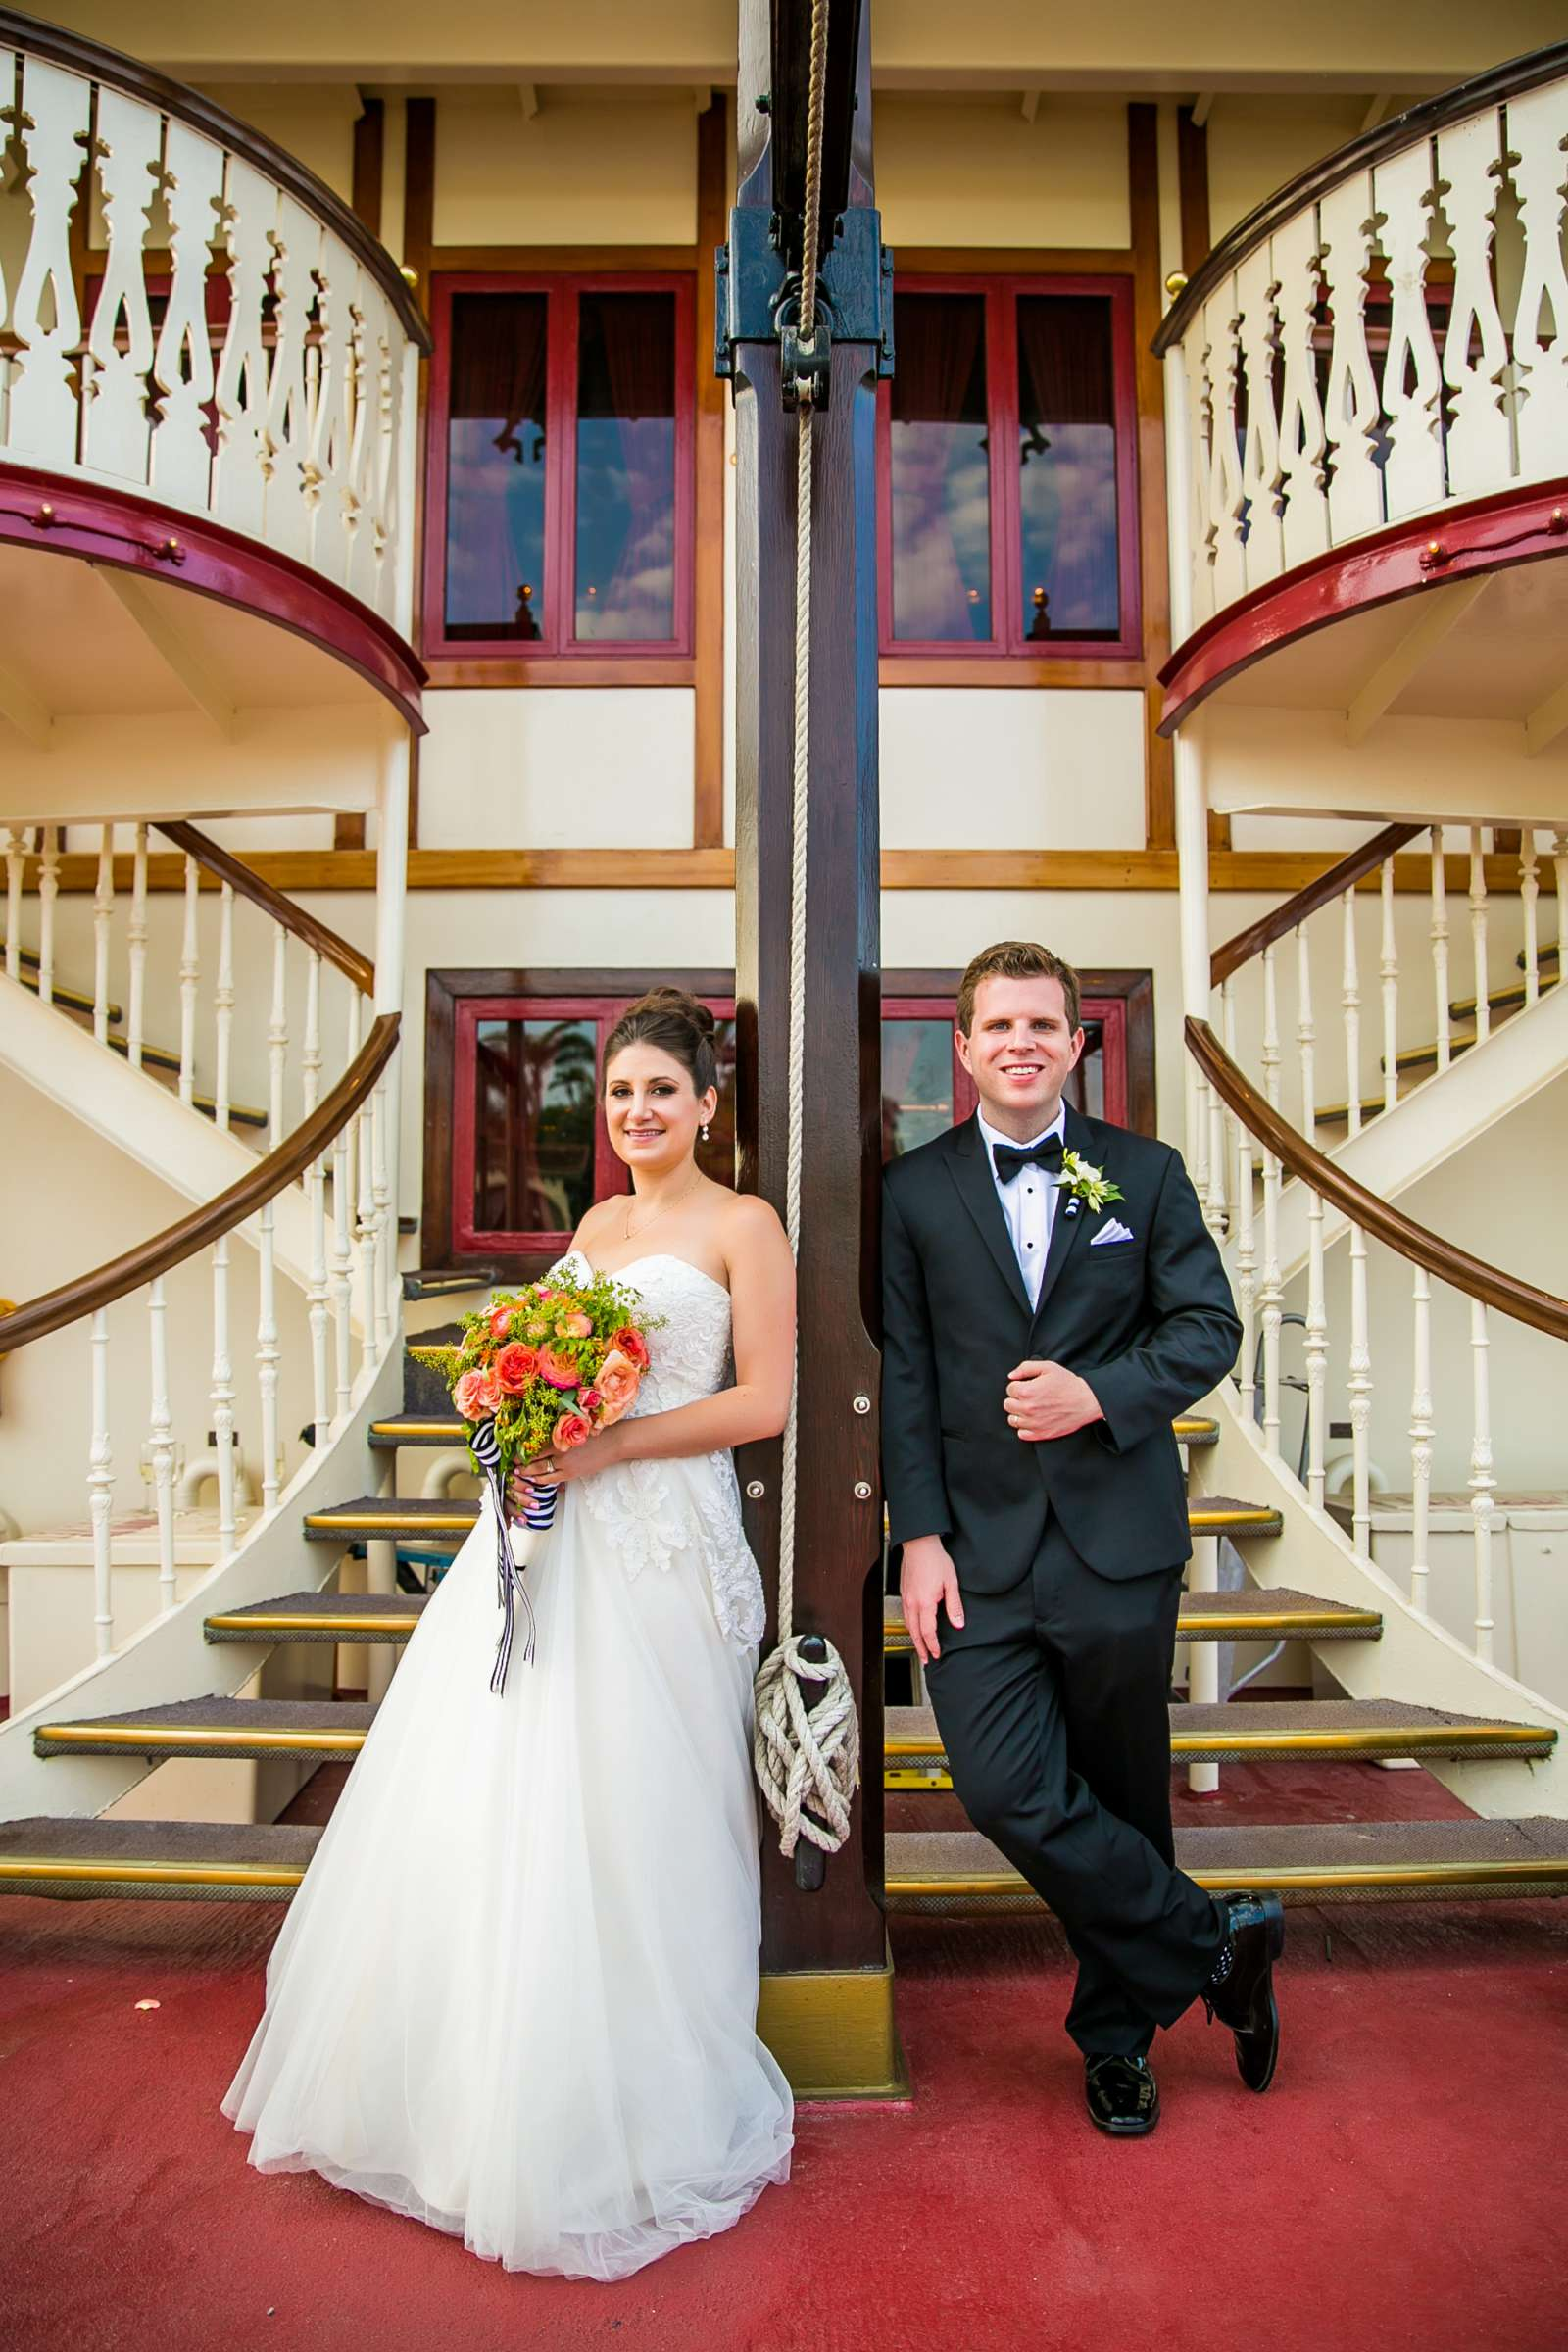 Bahia Hotel Wedding coordinated by I Do Weddings, Meredith and Jack Wedding Photo #1 by True Photography